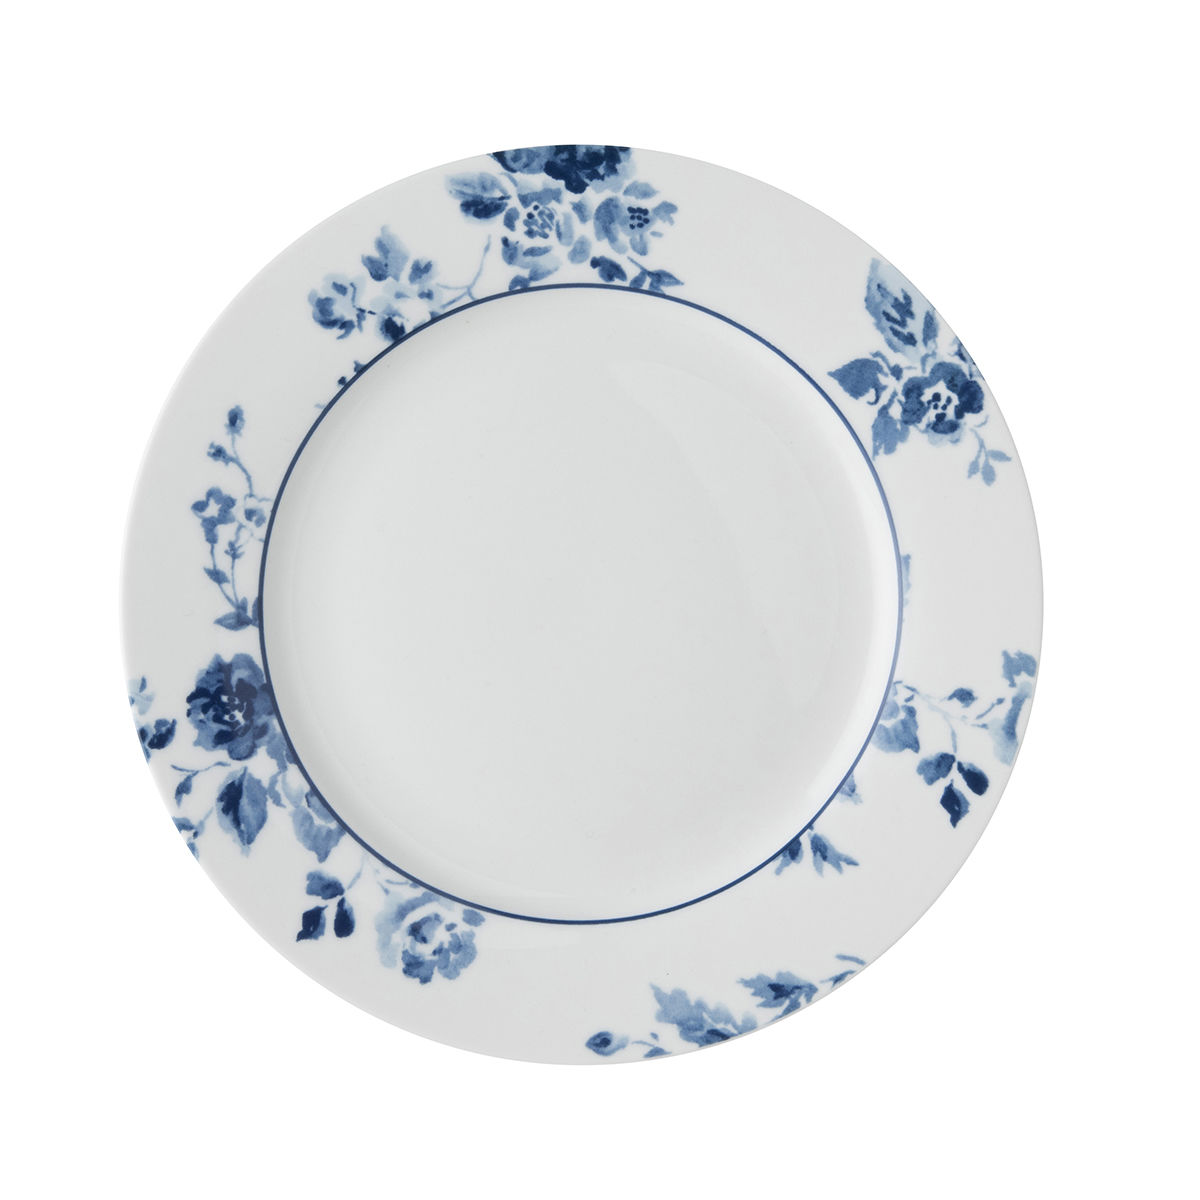 "Laura Ashley 7.75"" Plate China Rose - product images  of"